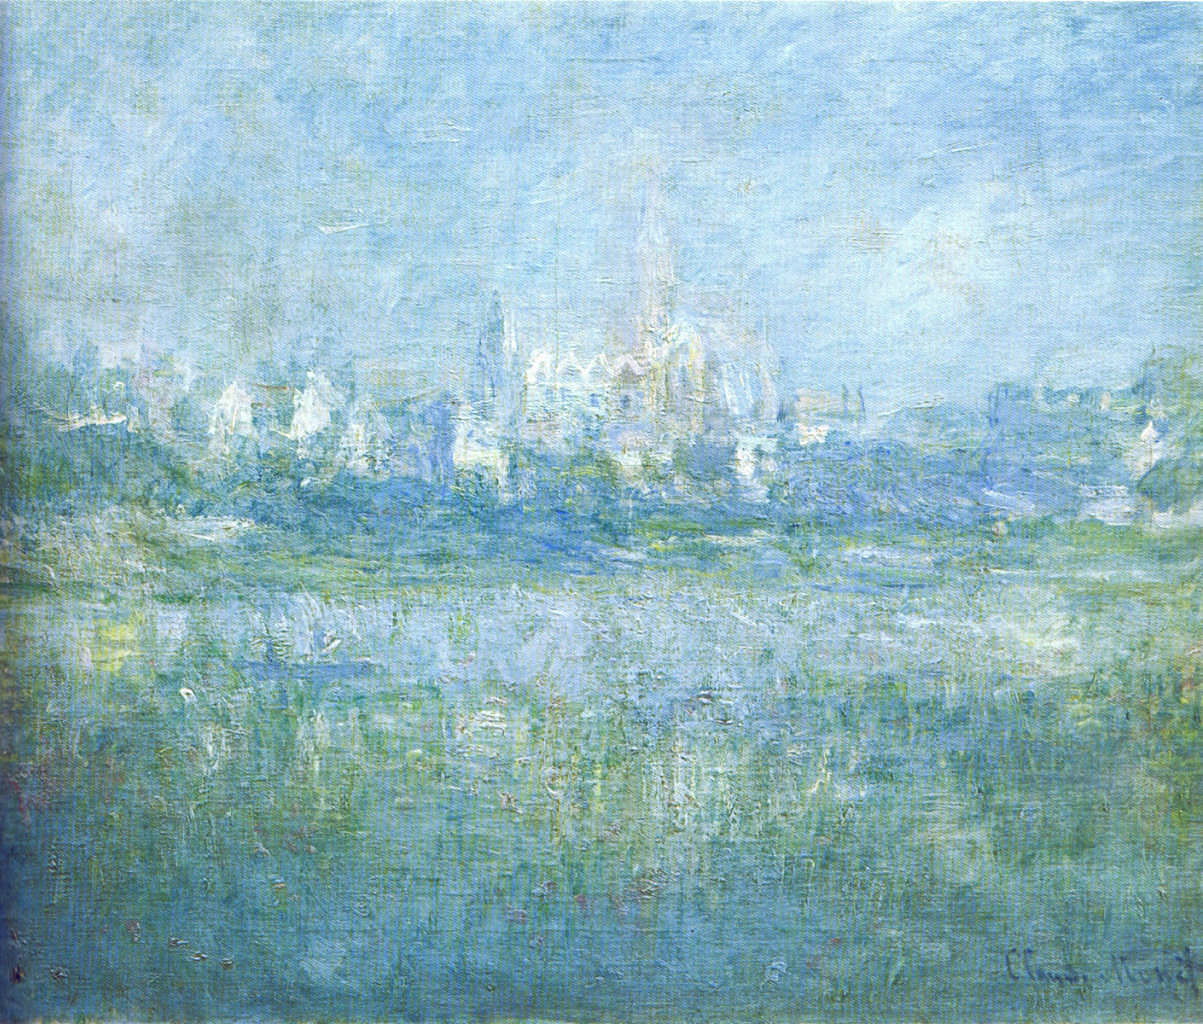 Vetheuil in the Fog 1879